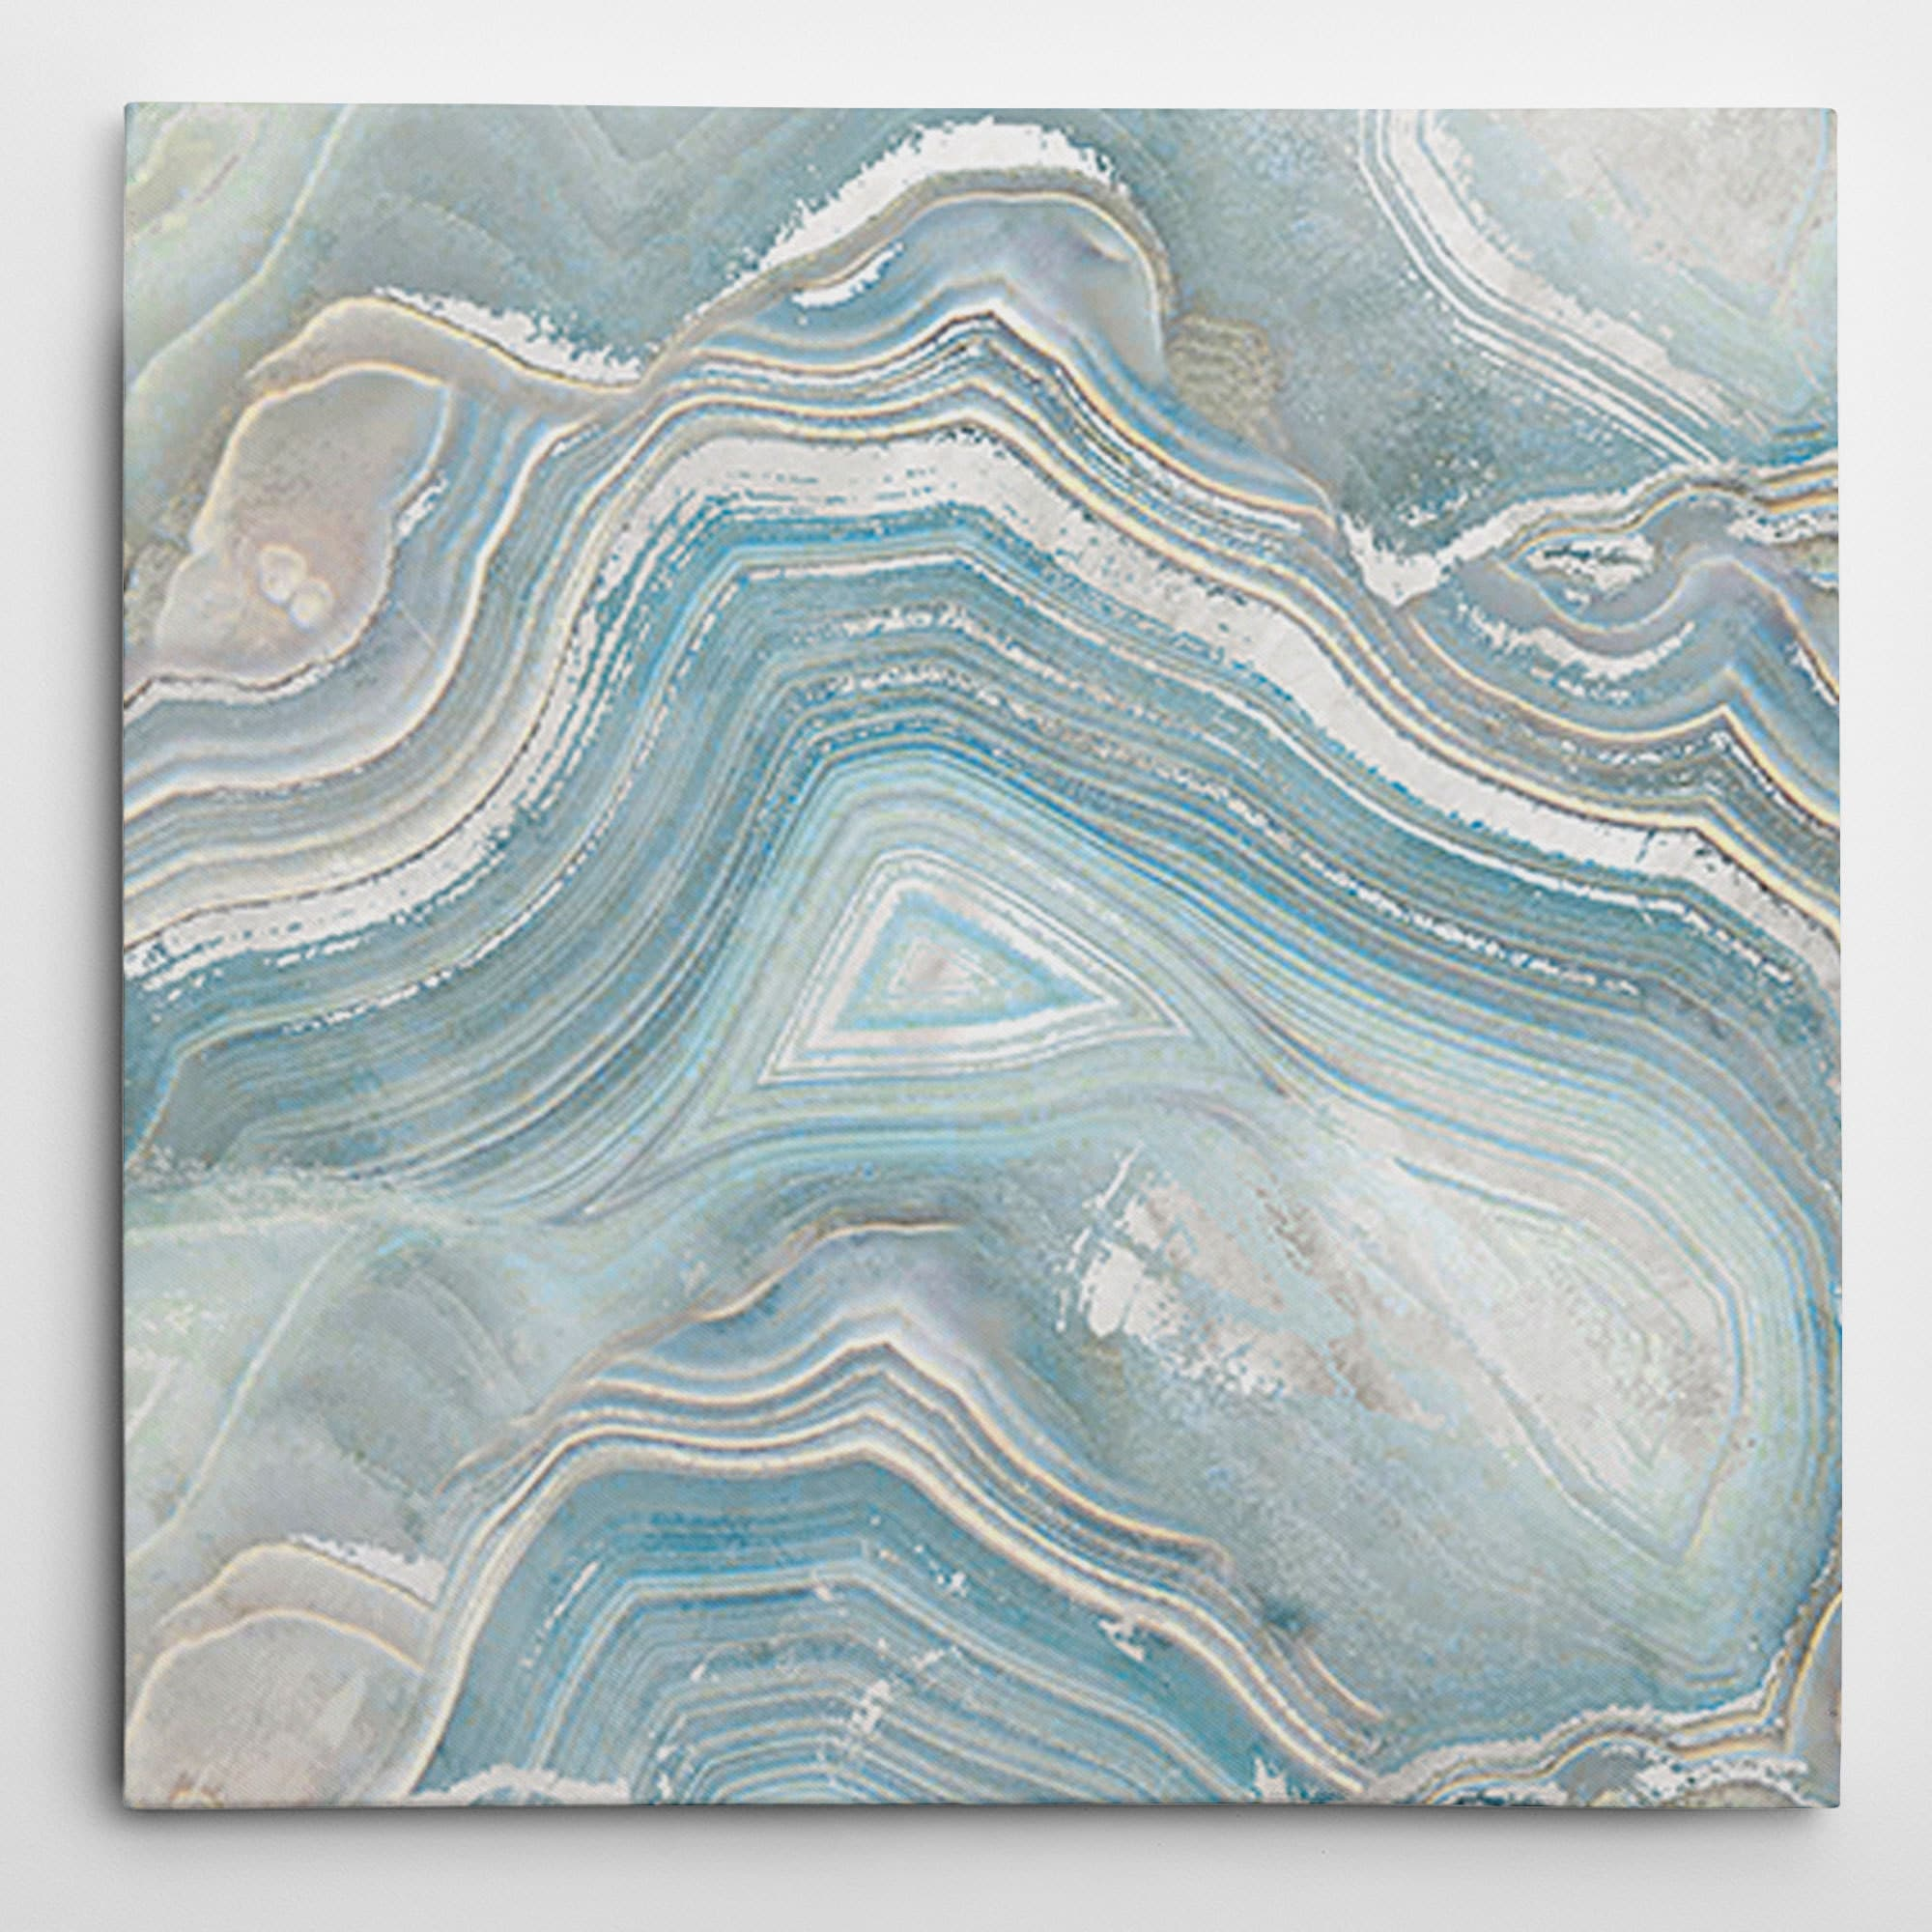 Porch & Den Agate in Blue I' Premium Gallery Wrapped Canvas Wall Art